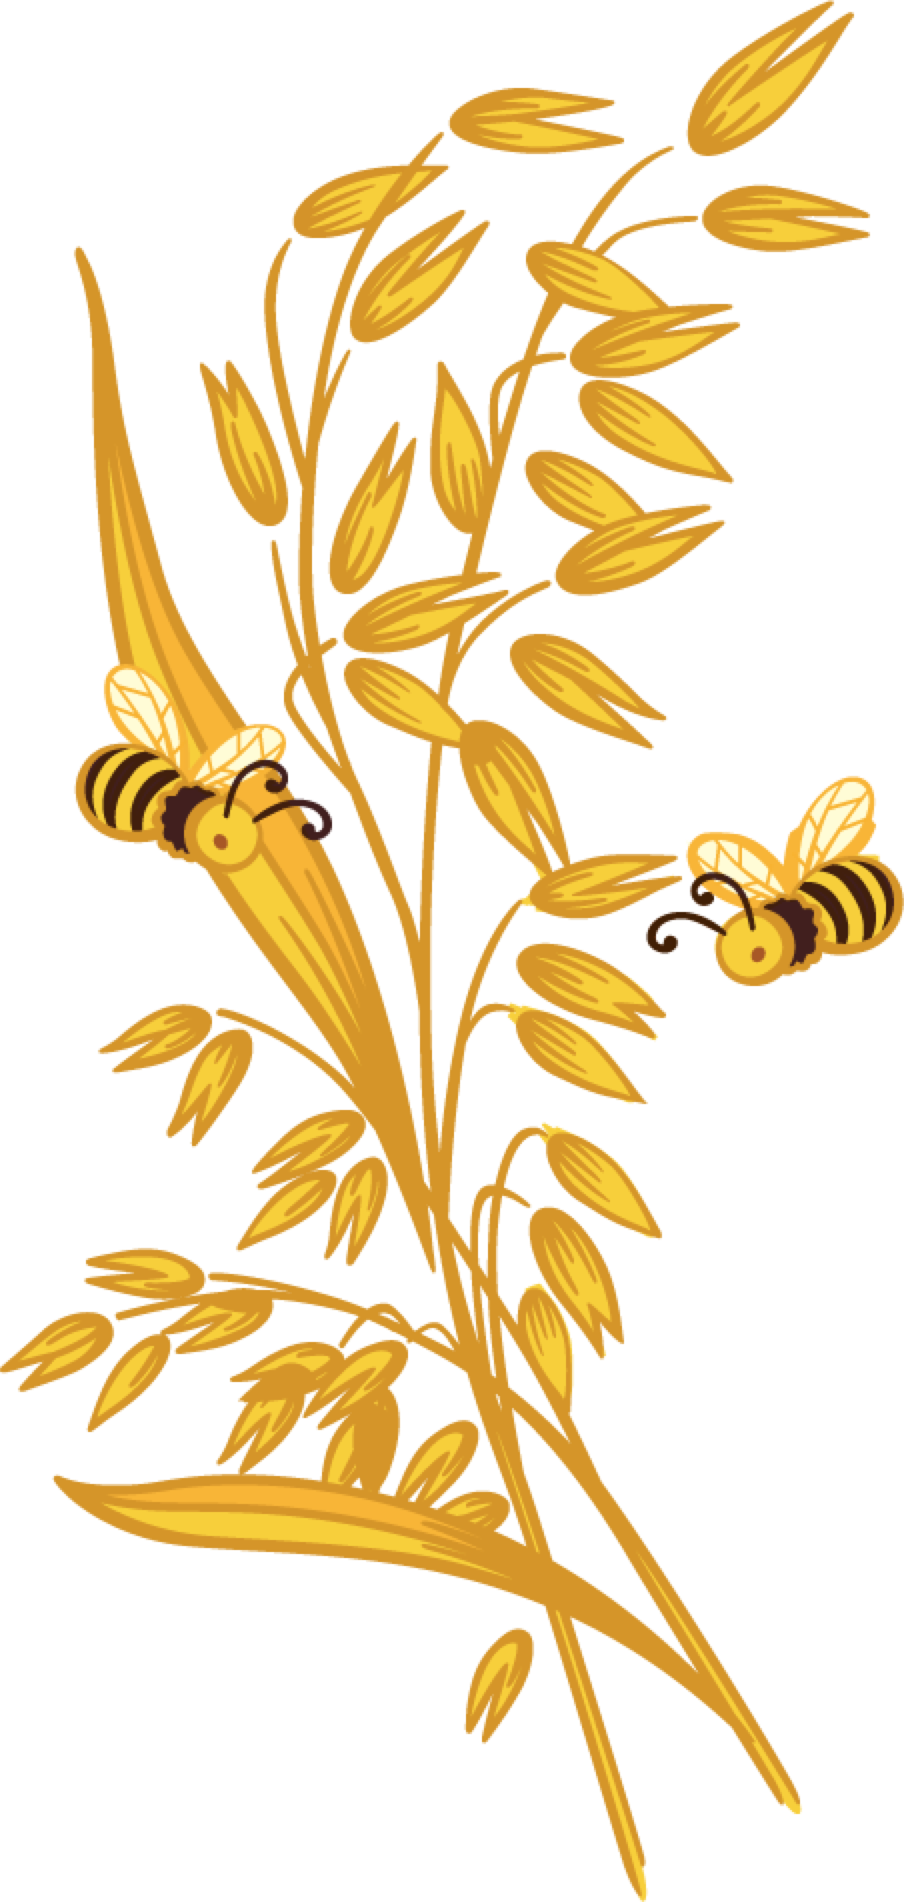 transparent stock Honey country harvest choatandhoneydfacehr. Grains clipart oats